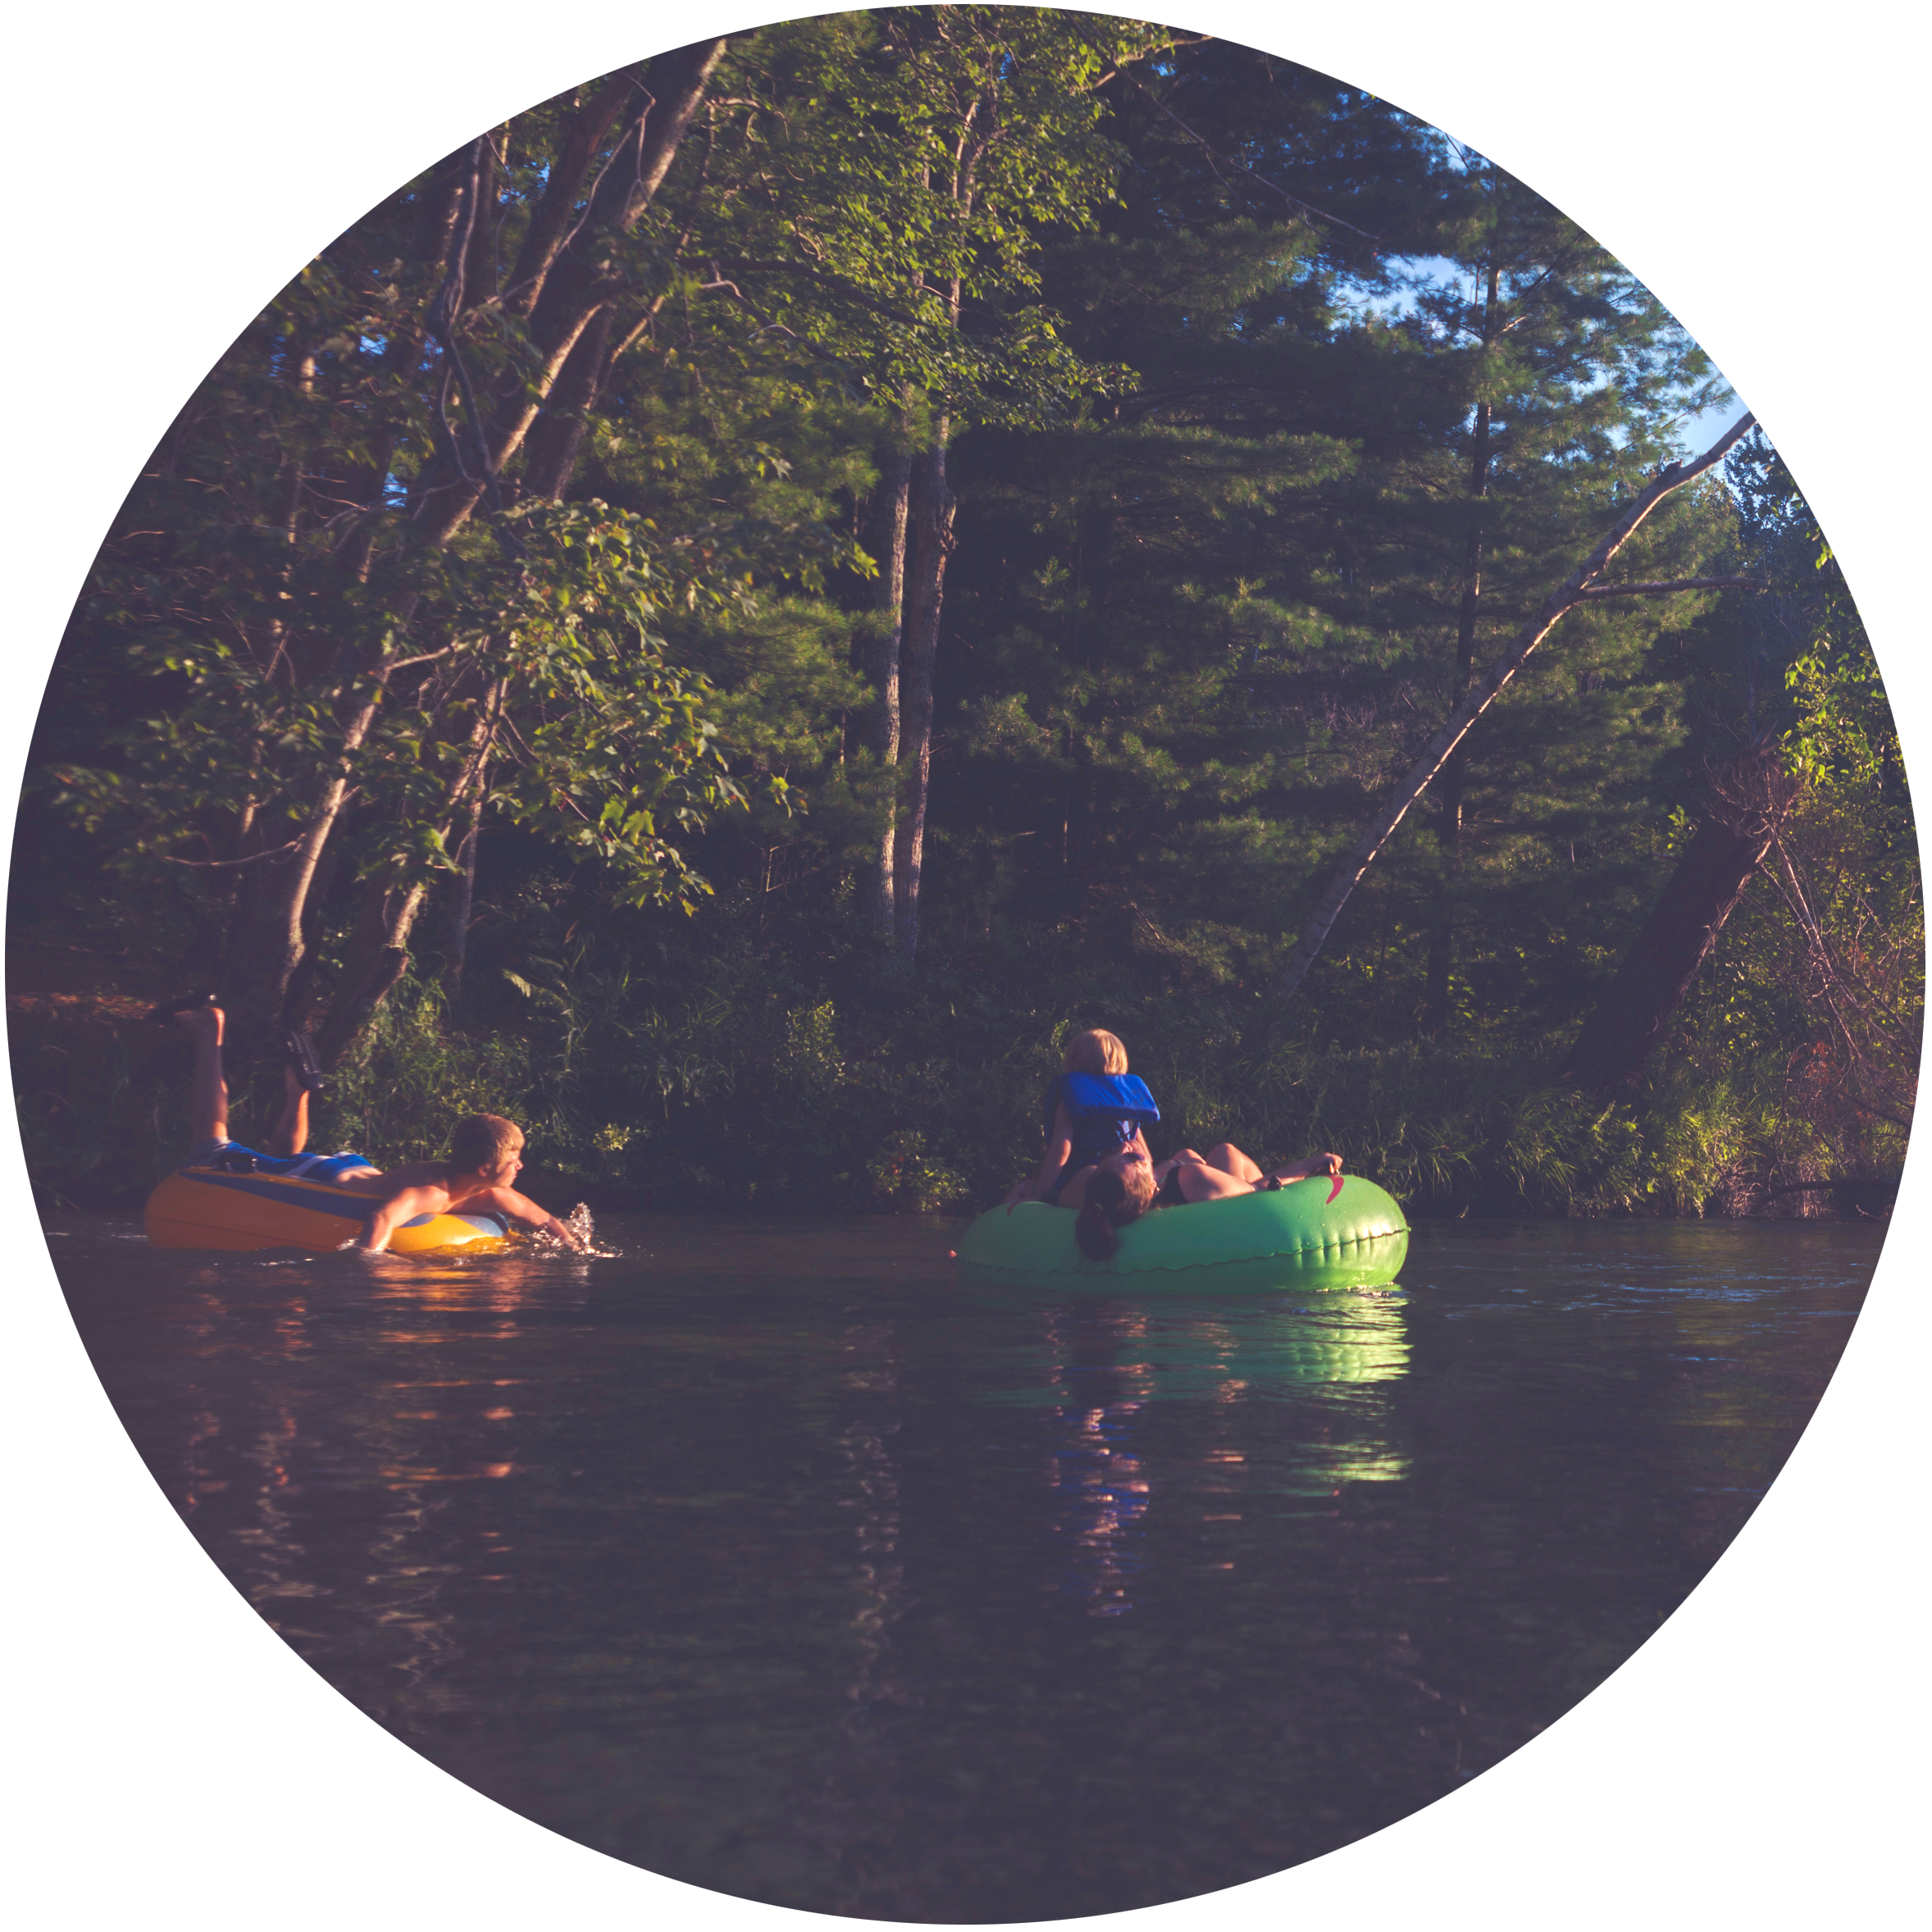 Root River Tubing  Park and never leave the Resort. Various launch and exit points directly on property. Purchase tubes from the Old Barn Resort. Affordable prices. Only dollars more than renting from other local vendors. Simply use our air station to inflate and enjoy.